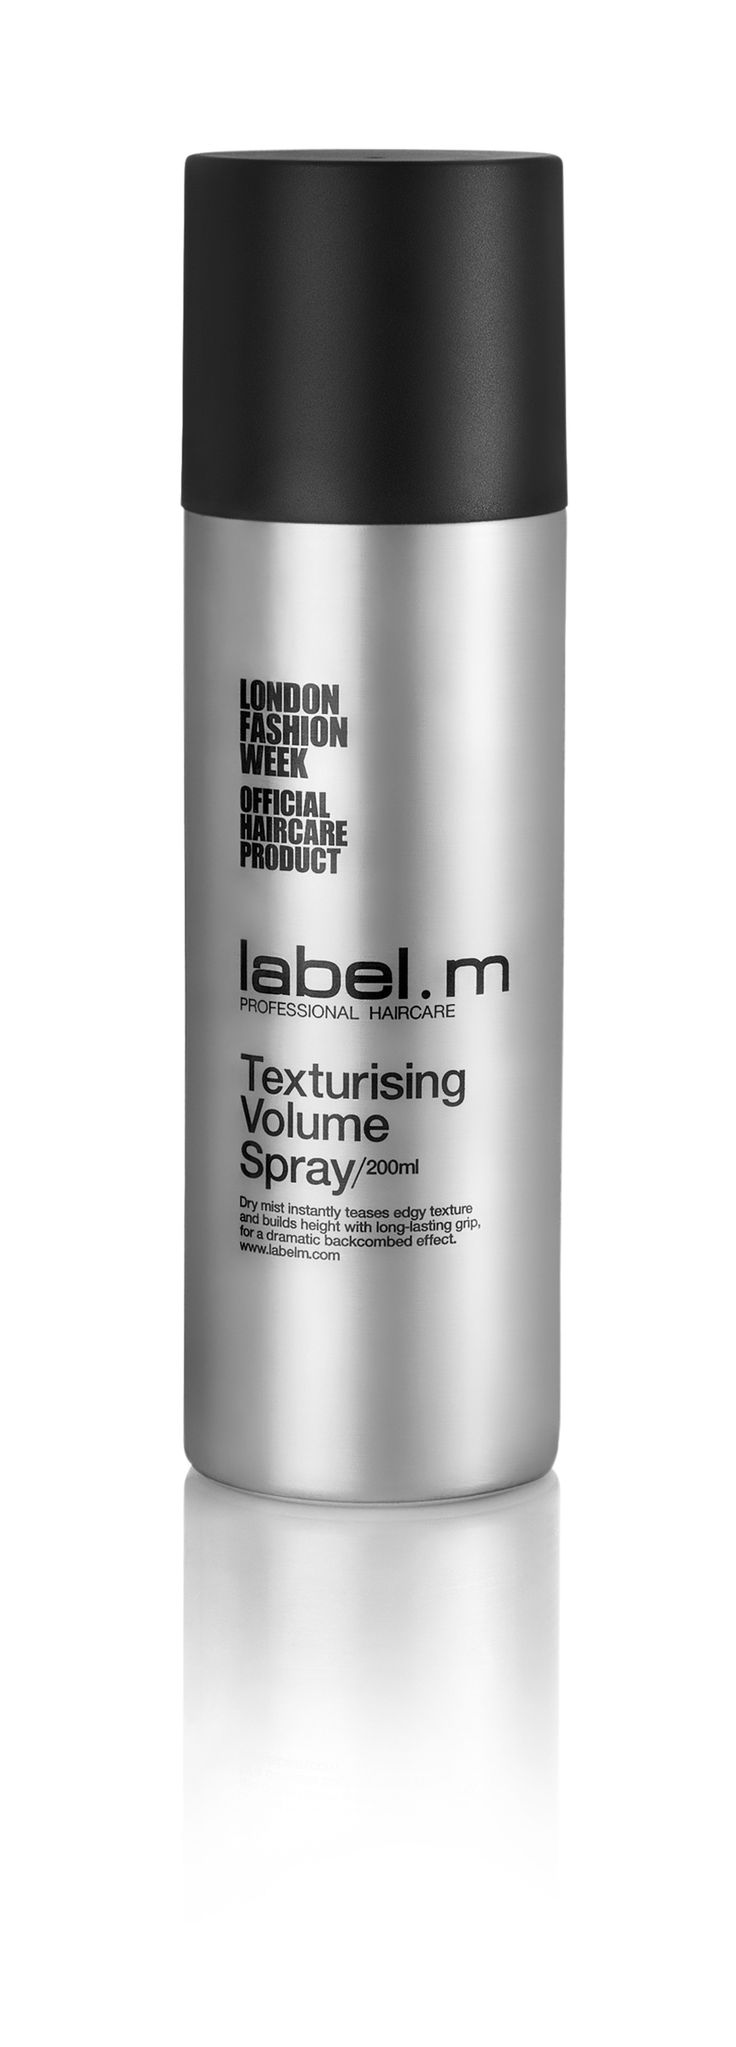 Wanna know what products Fridell&Gold uses, loves and most definitely recommends? Here's one...label.m Texturising Volume Spray! (This spray boasts the texture of dry shampoo and the hold of a hairspray to gift you with a salon perfect finish.)